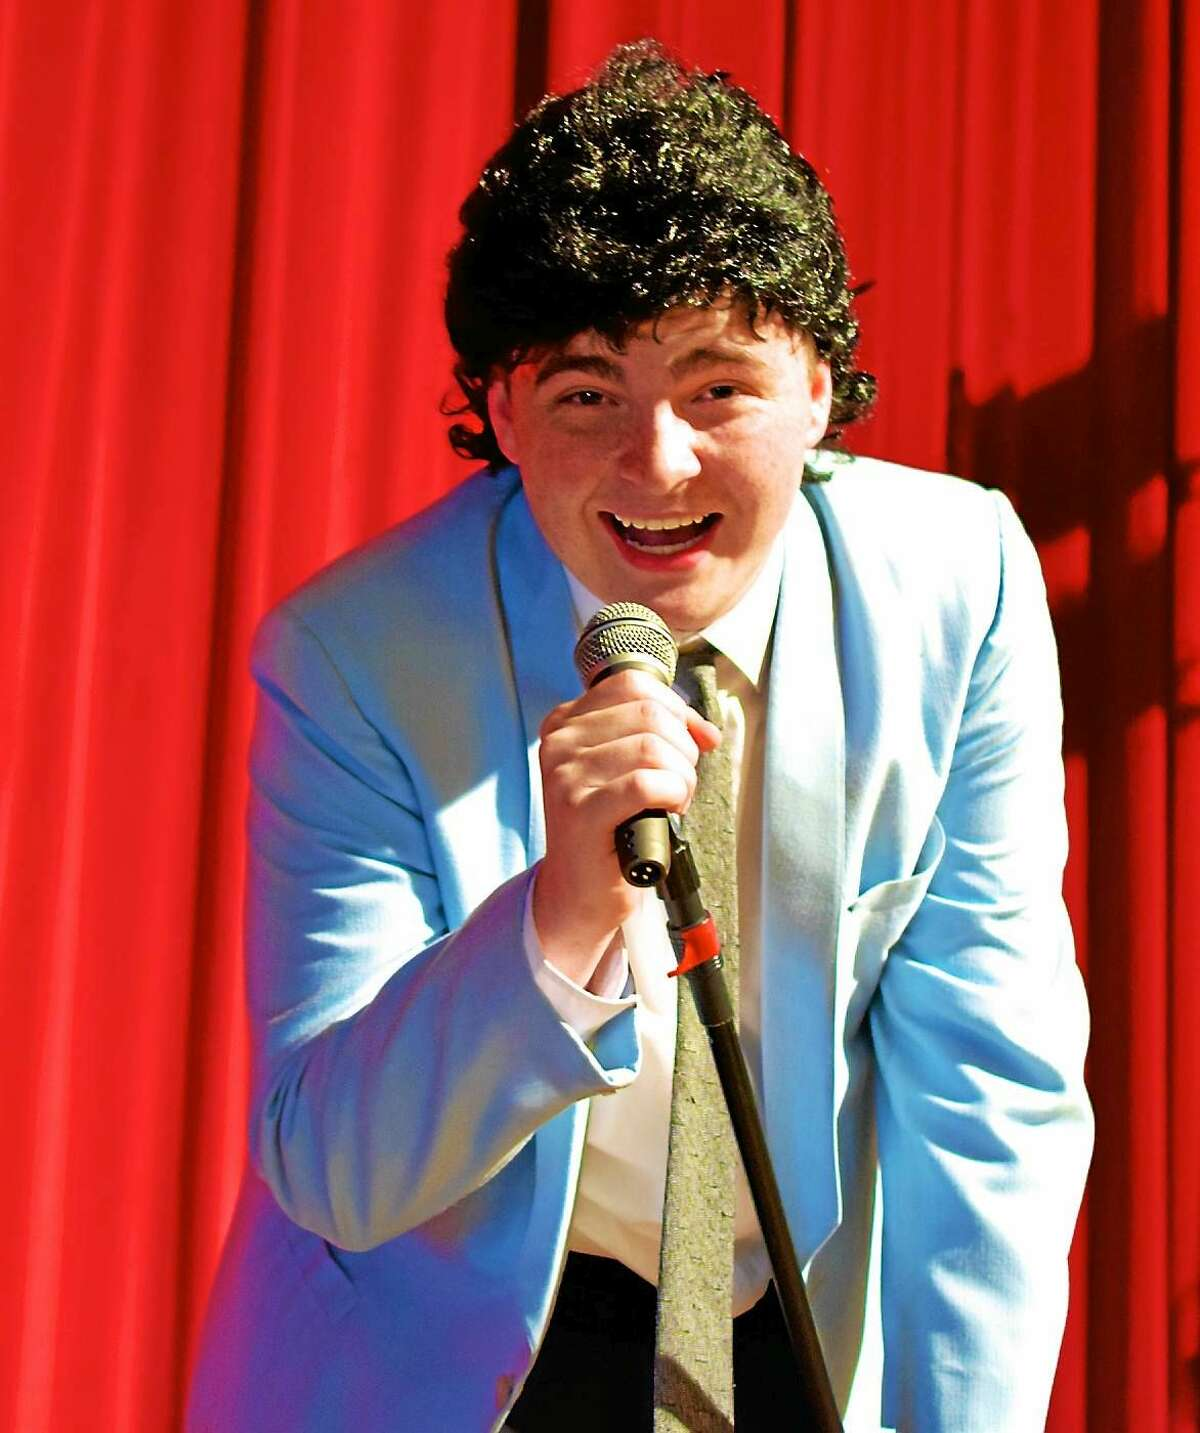 """Photos by Eric Hahn Connor Dunn plays Robbie in """"The Wedding Singer,"""" performing at the Thomaston Opera House Aug. 13-15."""